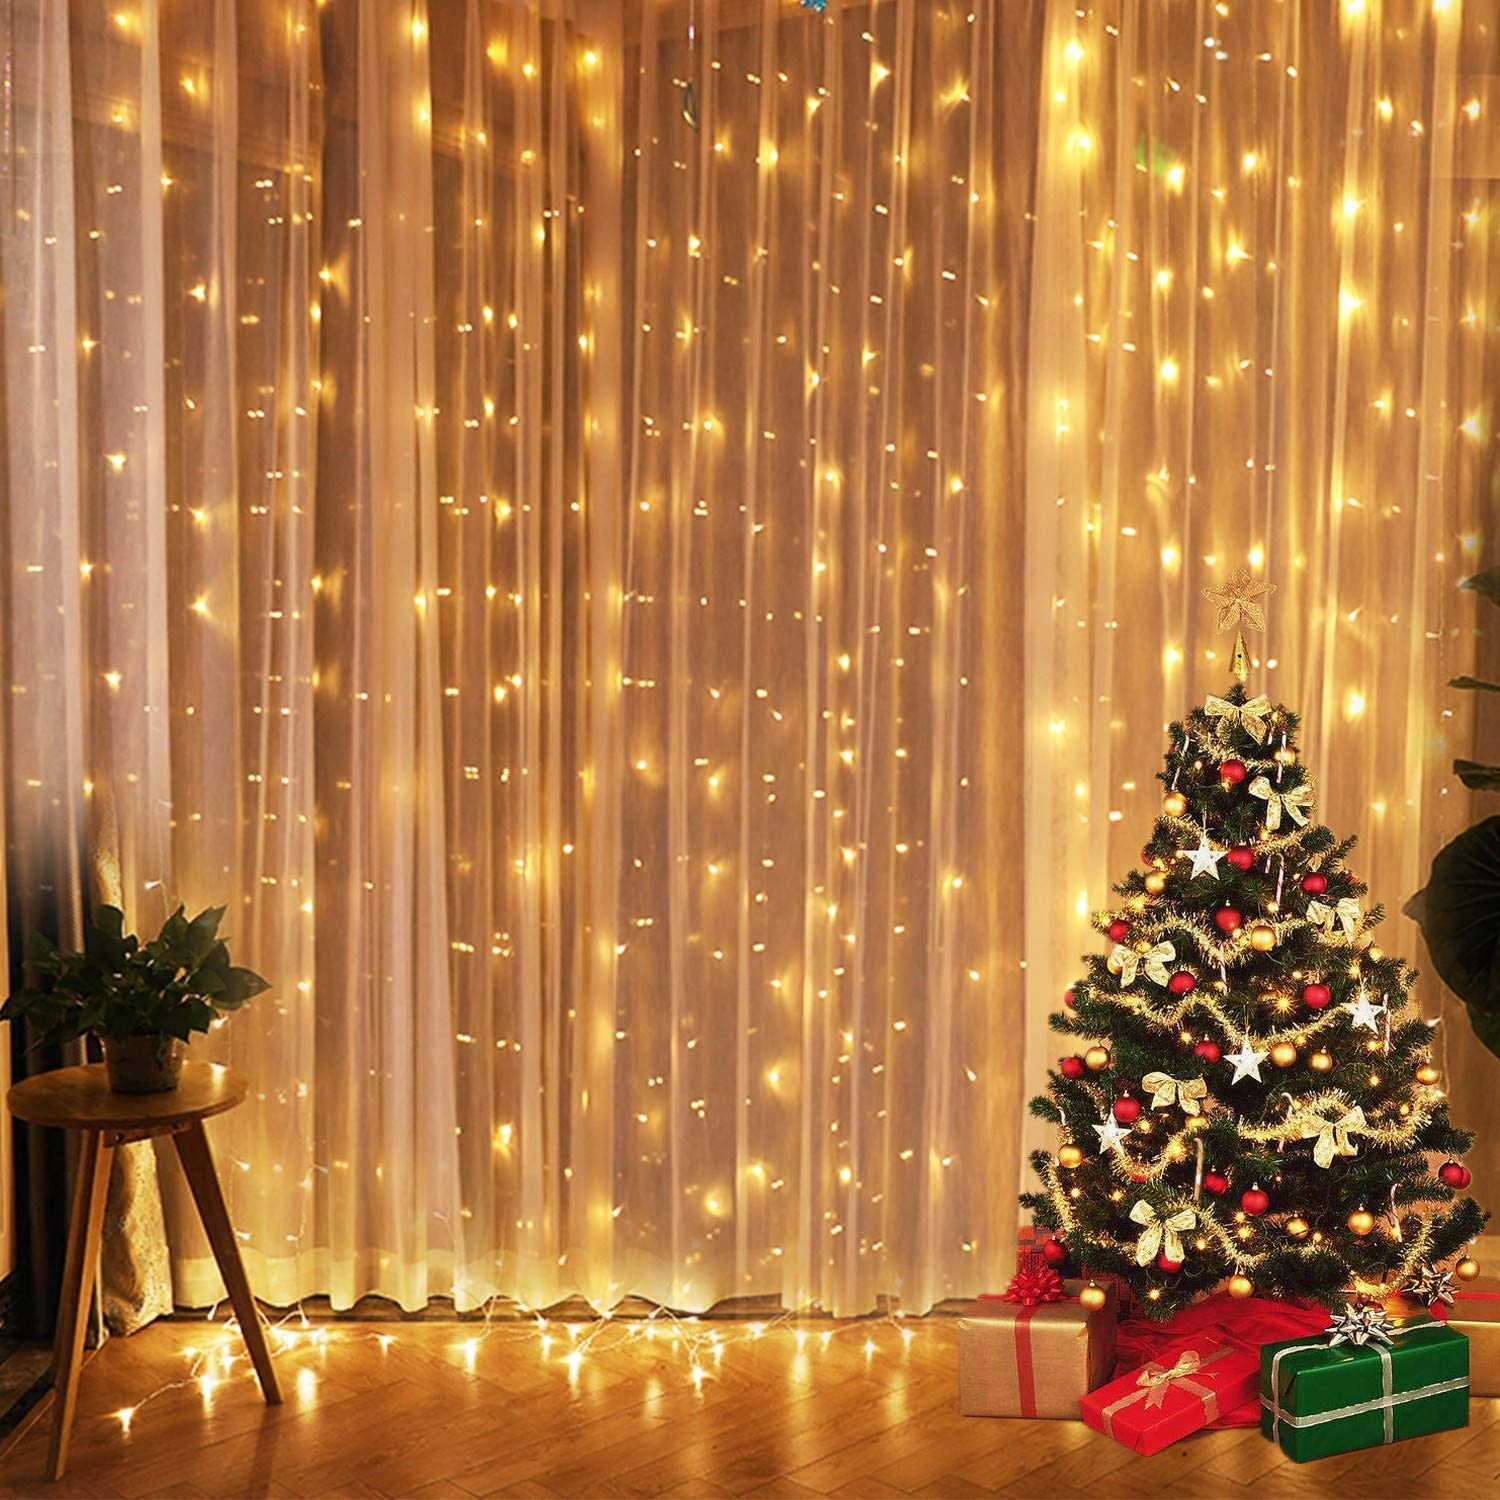 Amazon Com Longans Fairy Curtain Lights Fun Outdoor Festoon Lighting 8 Modes Led Curtain Strips Icicle String Lights For Bedroom Party Indoor Outdoor Garden Wall Wedding Christmas Xmas Decorations Warm White Home Improvement,What Color Shirt Goes Well With Dark Blue Jeans